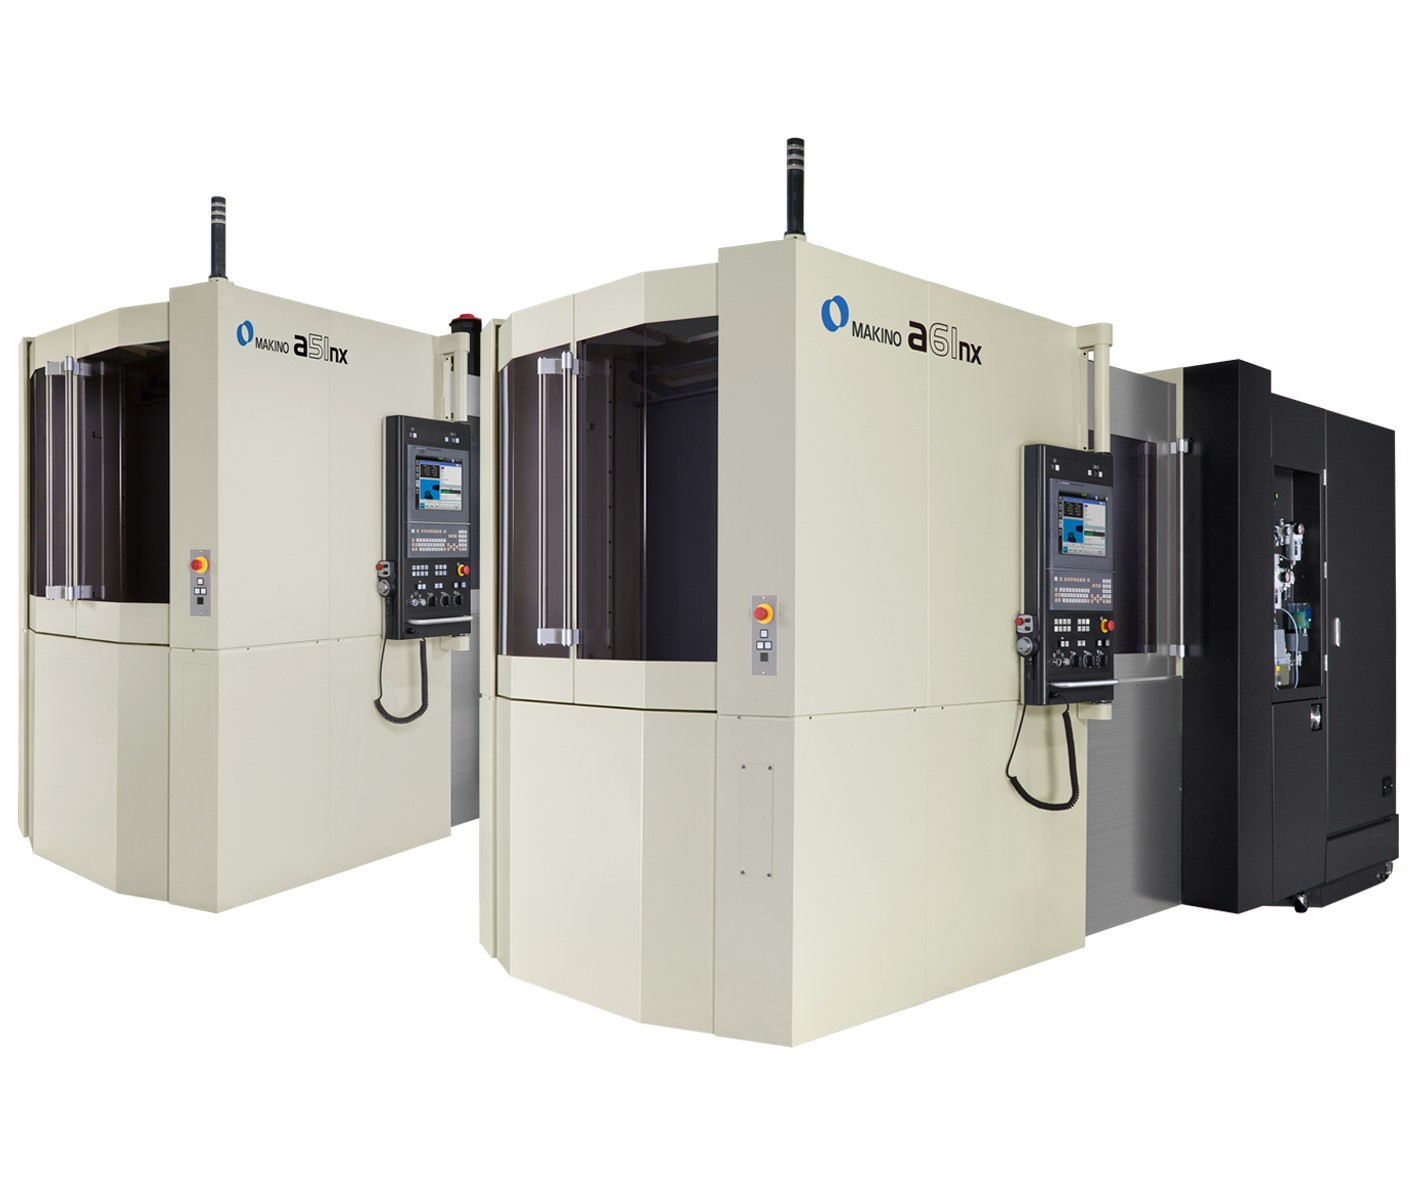 Makino will display its a51nx and a61nx HMCs at IMTS 2018.